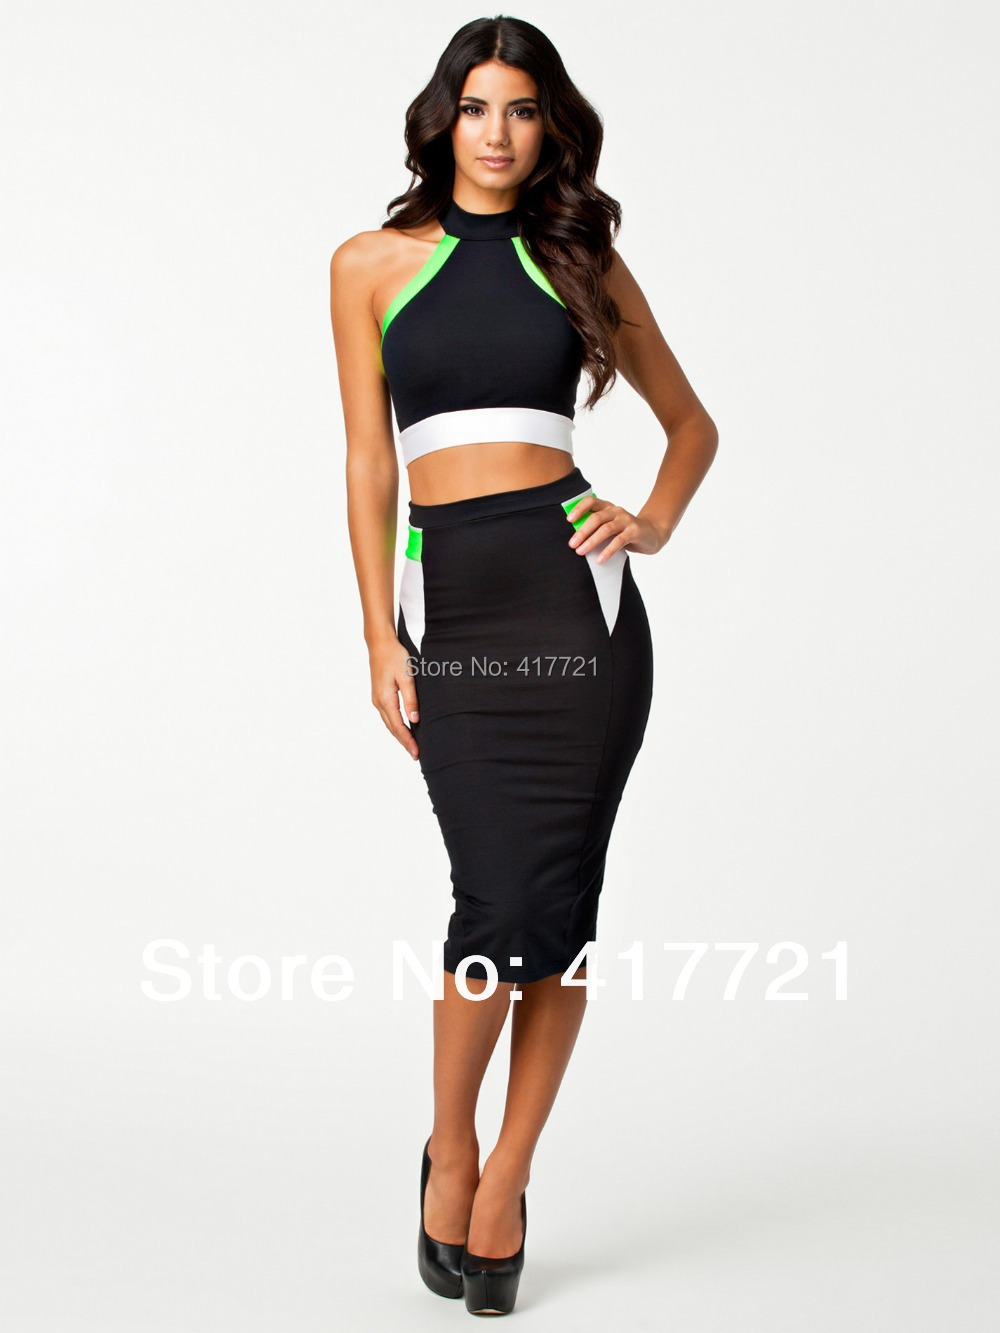 Compare Prices on Piece Dresses- Online Shopping/Buy Low Price ...